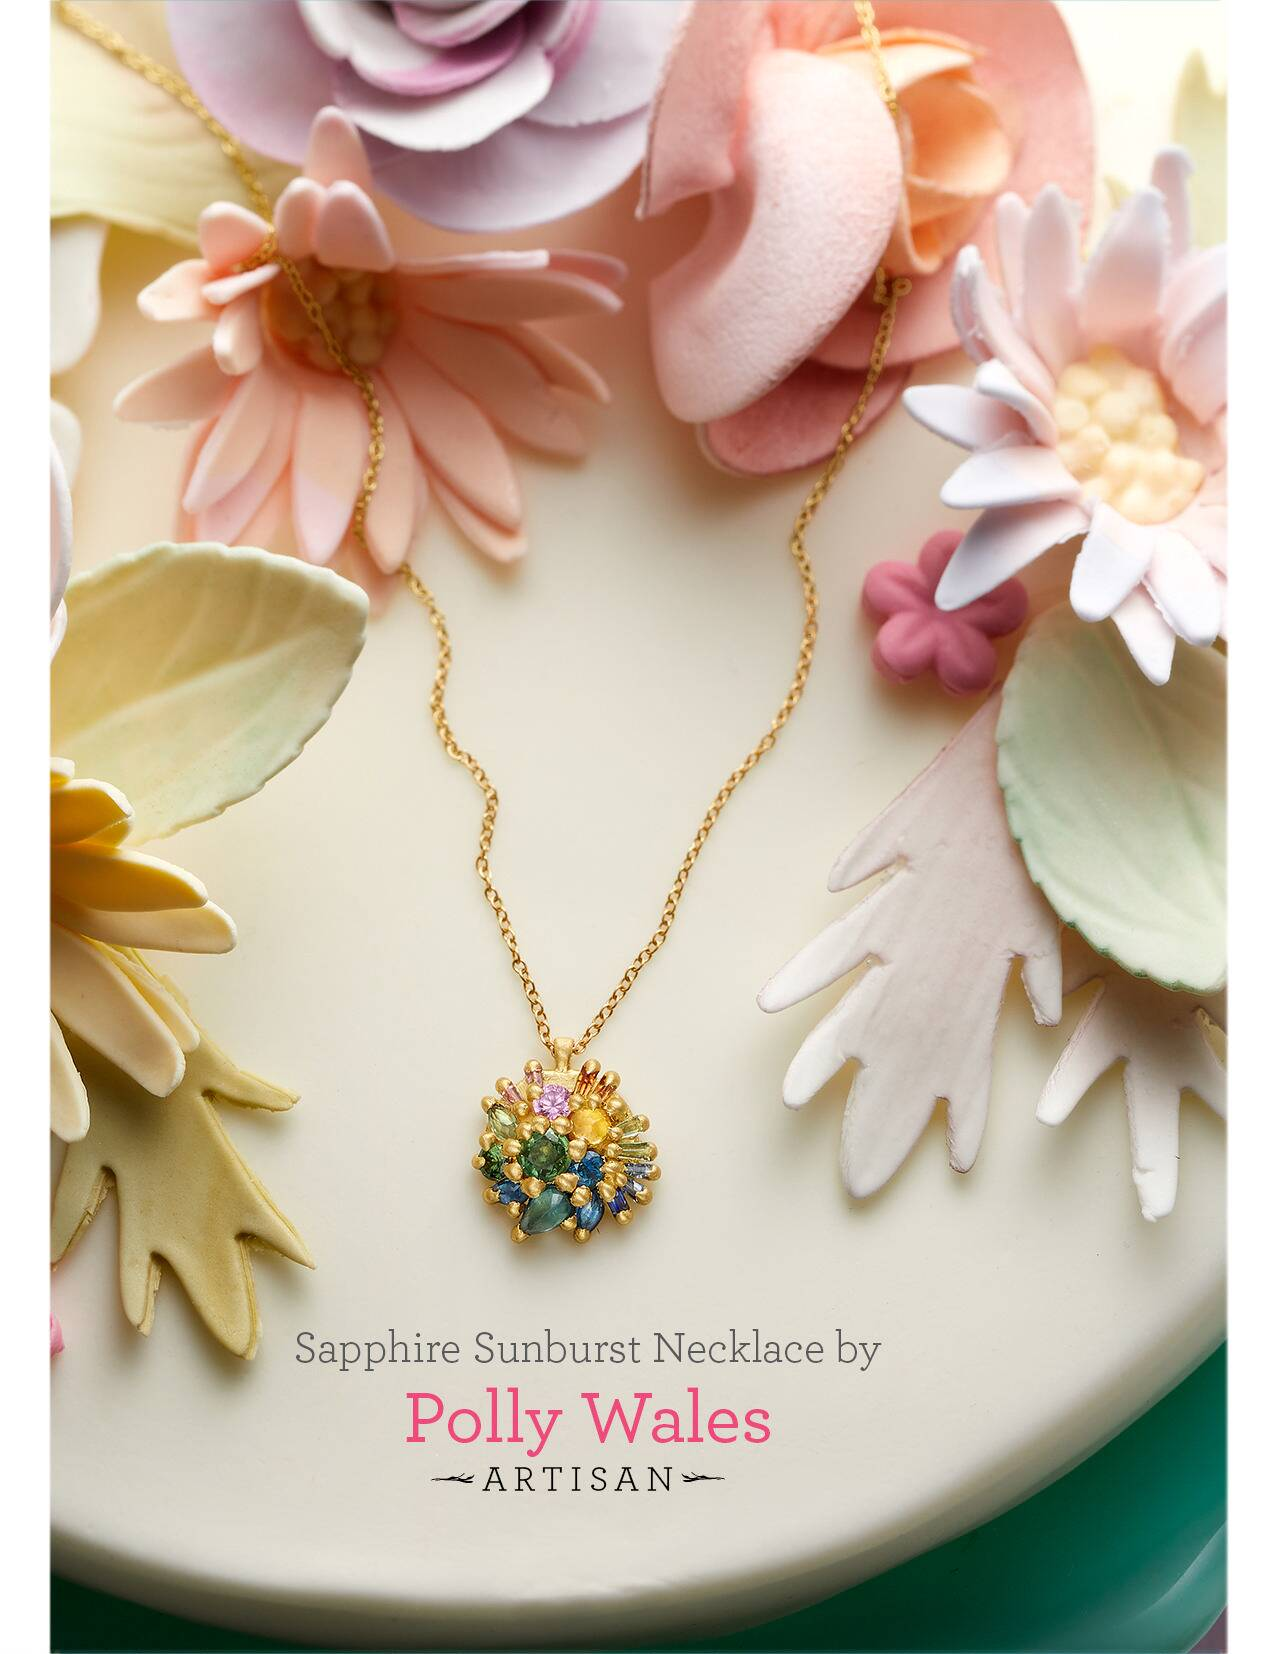 Polly Wales